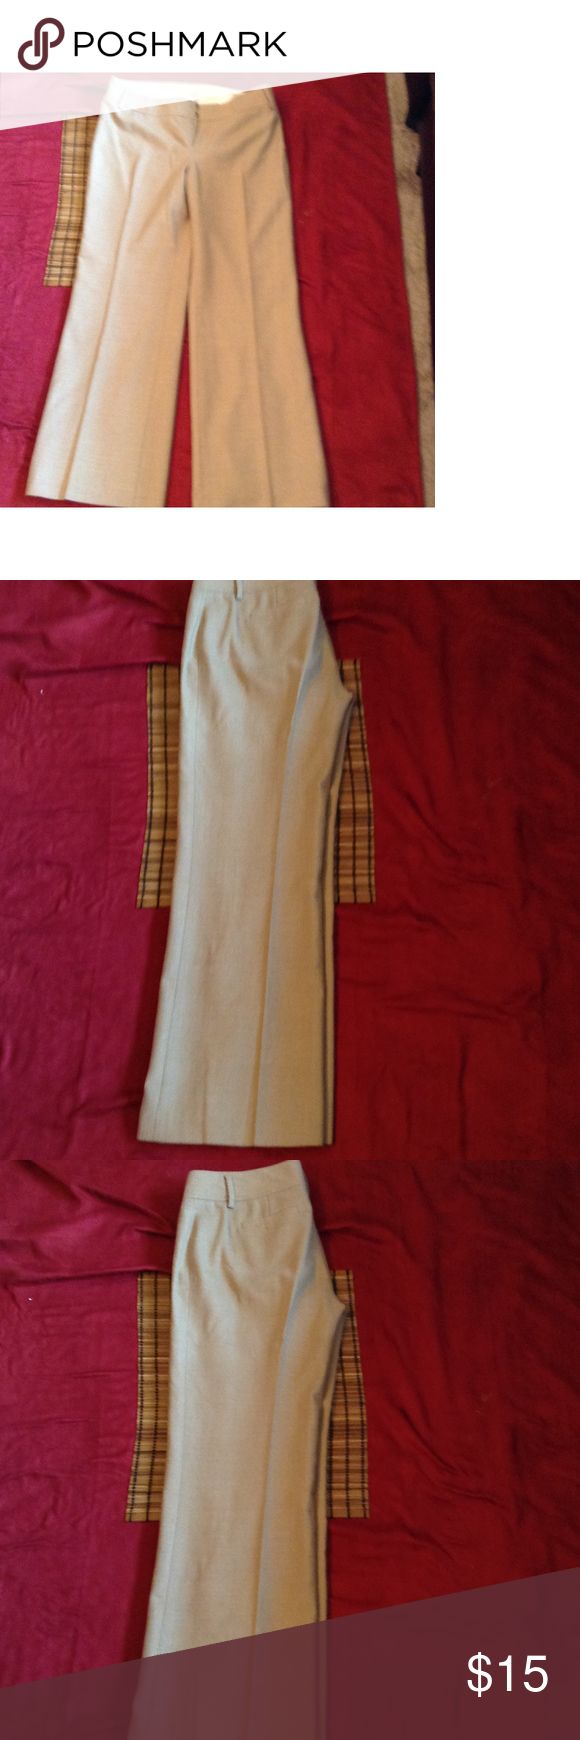 Banana Republic Pants Size 6P Fit Women Beige Tan Wool Lined Pants Martin Fit Banana Republic Pants Size 6P Fit Women Beige Tan Wool Lined Pants Martin Fit. Pre-owned great condition no major sign of wear and tear no rips, odors, marks. Banana Republic Pants Capris